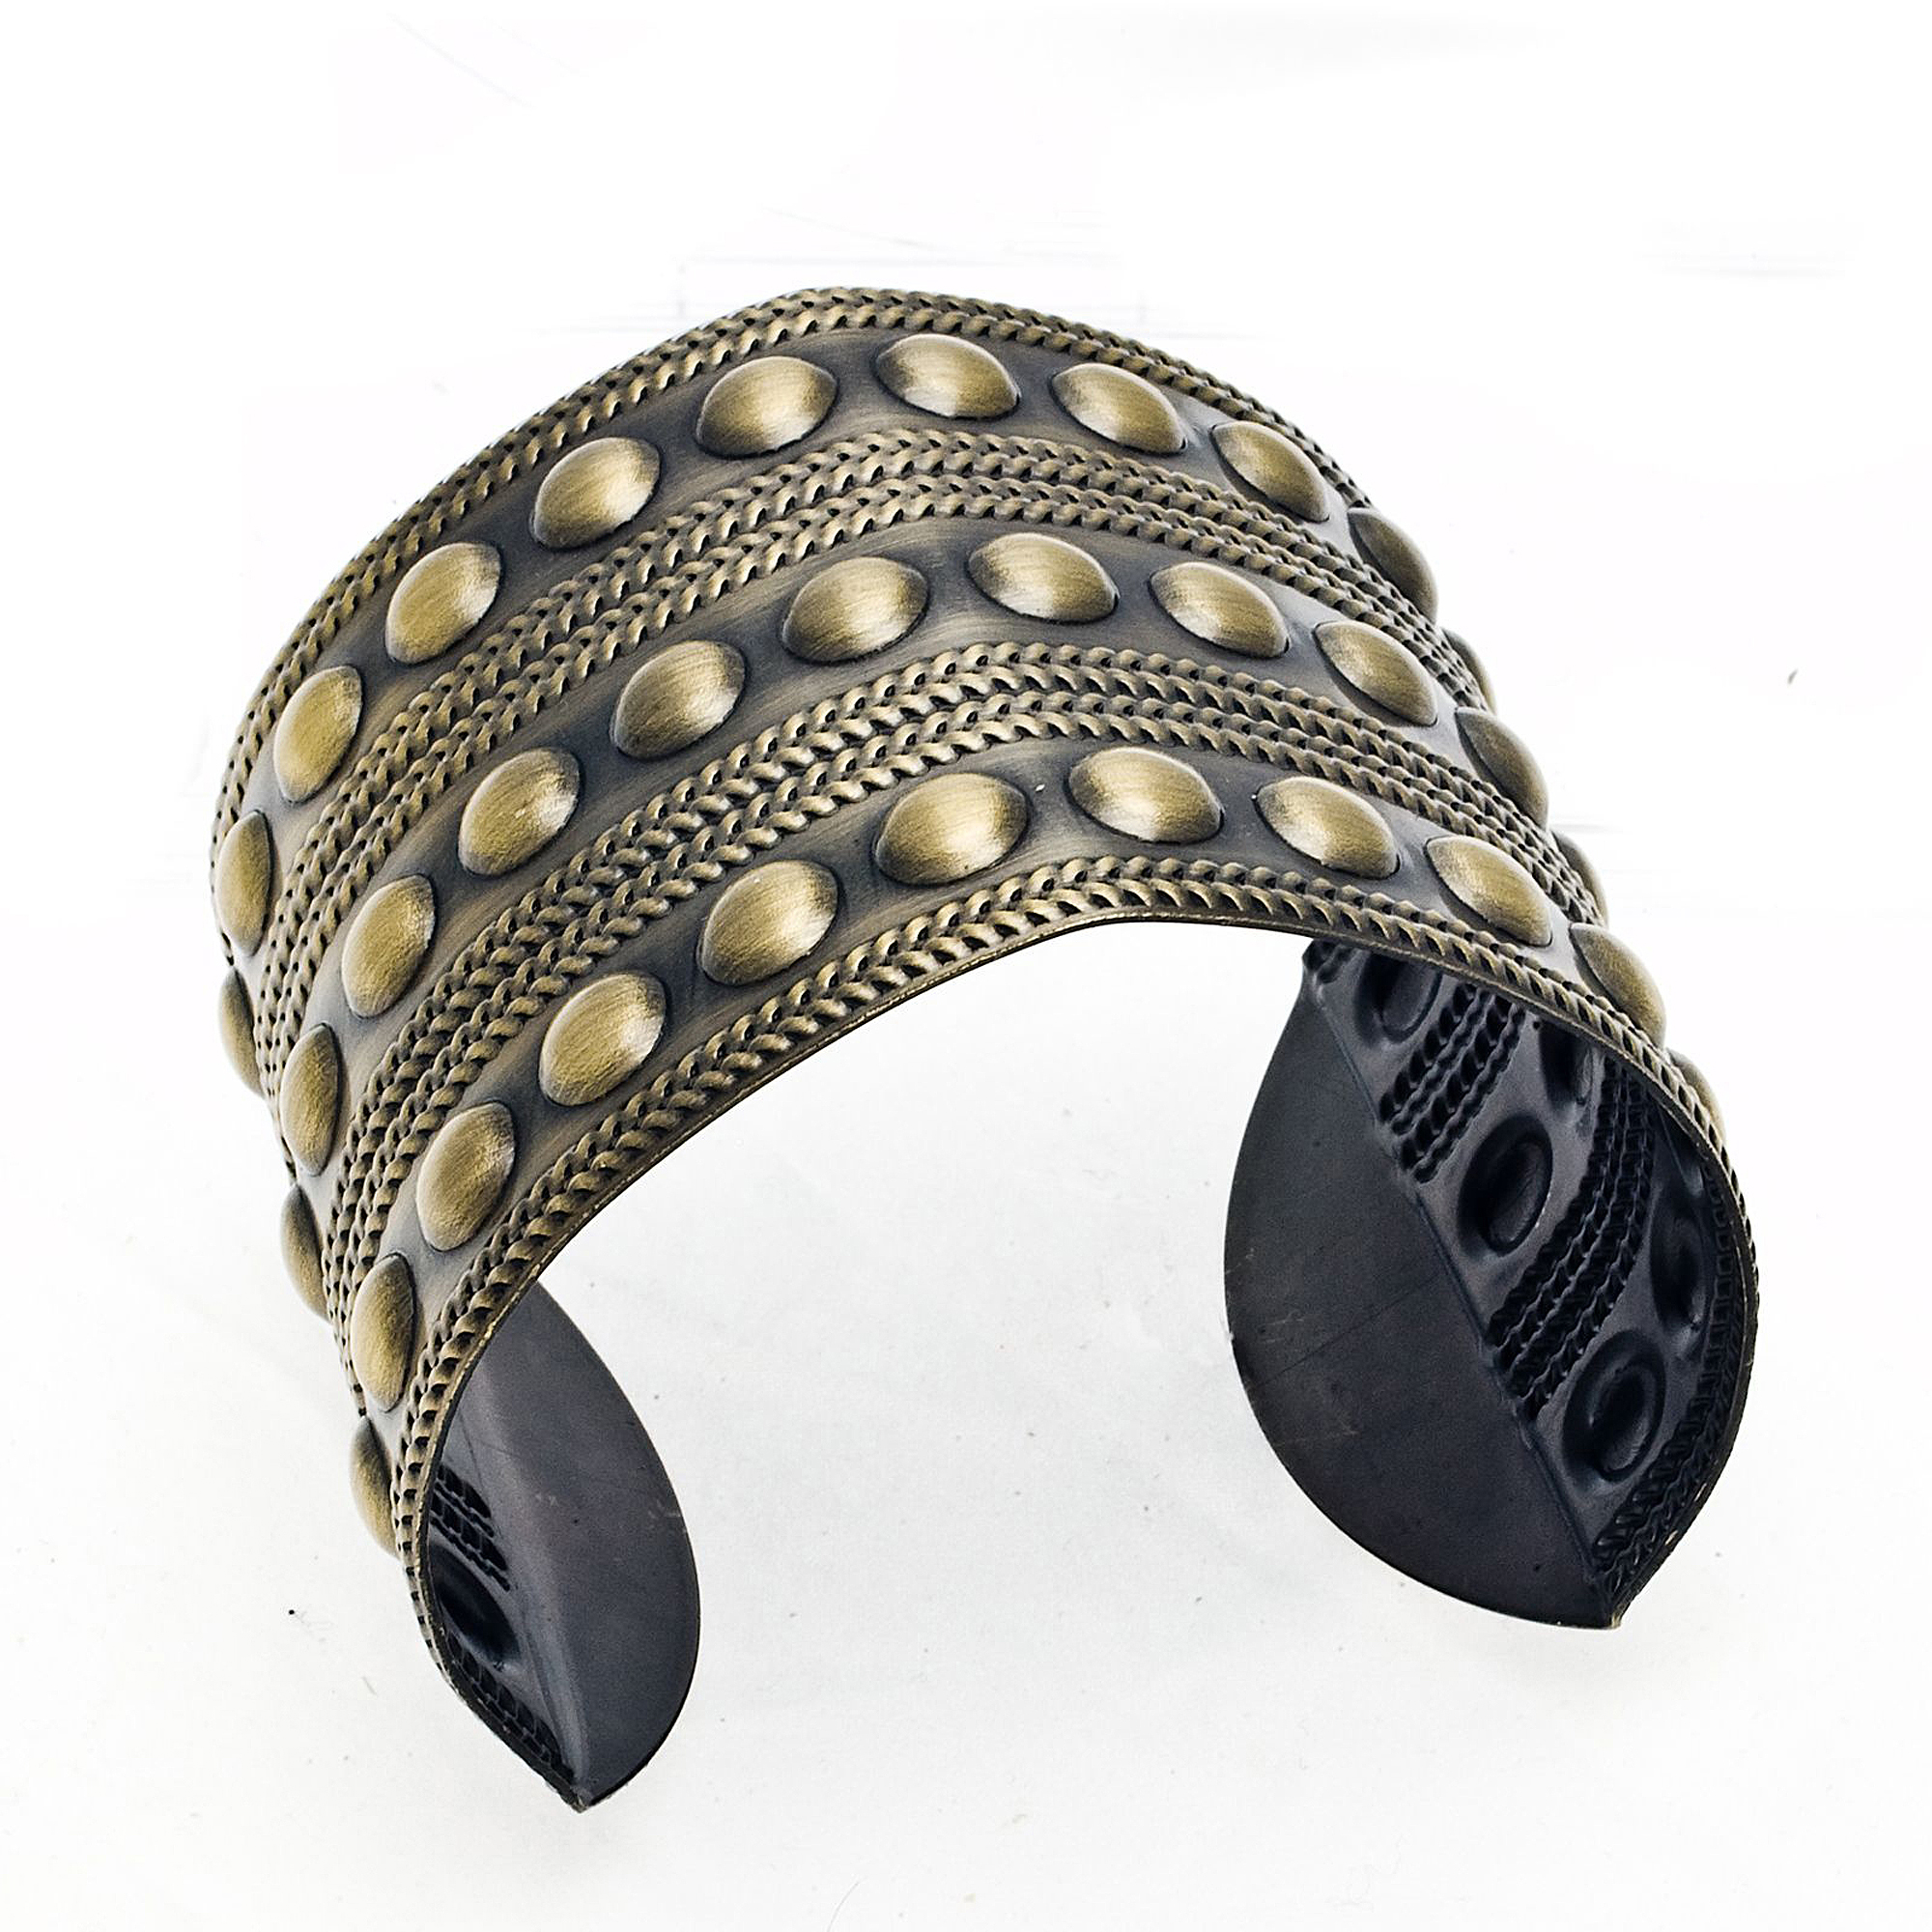 Sunnywood Centurian Royalty Wrist Armor Adult Costume Accessory